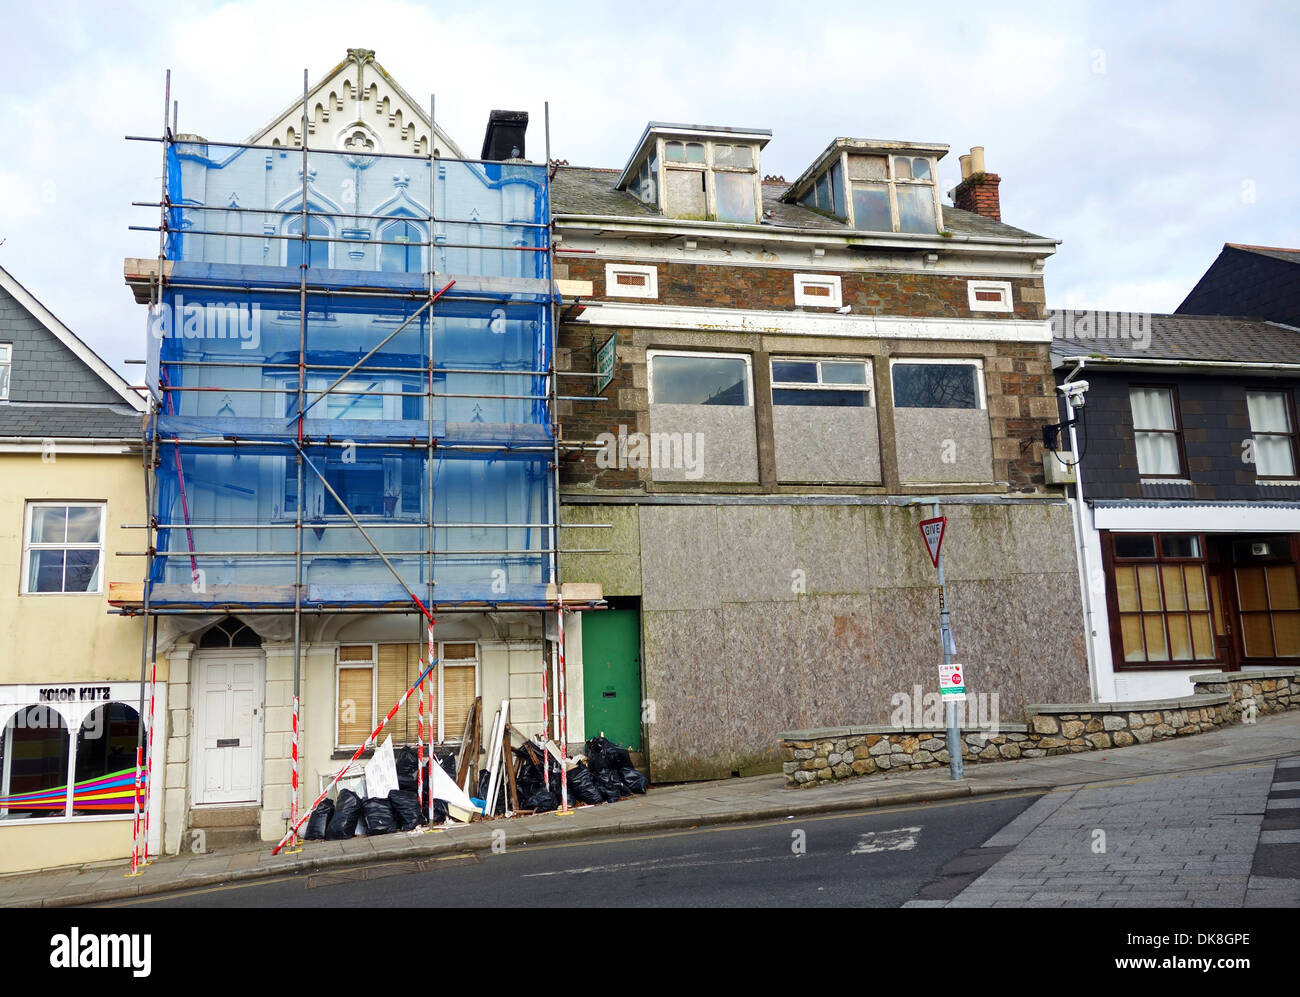 An Old Building Under Renovation Works In Redruth, Cornwall, UK   Stock  Image